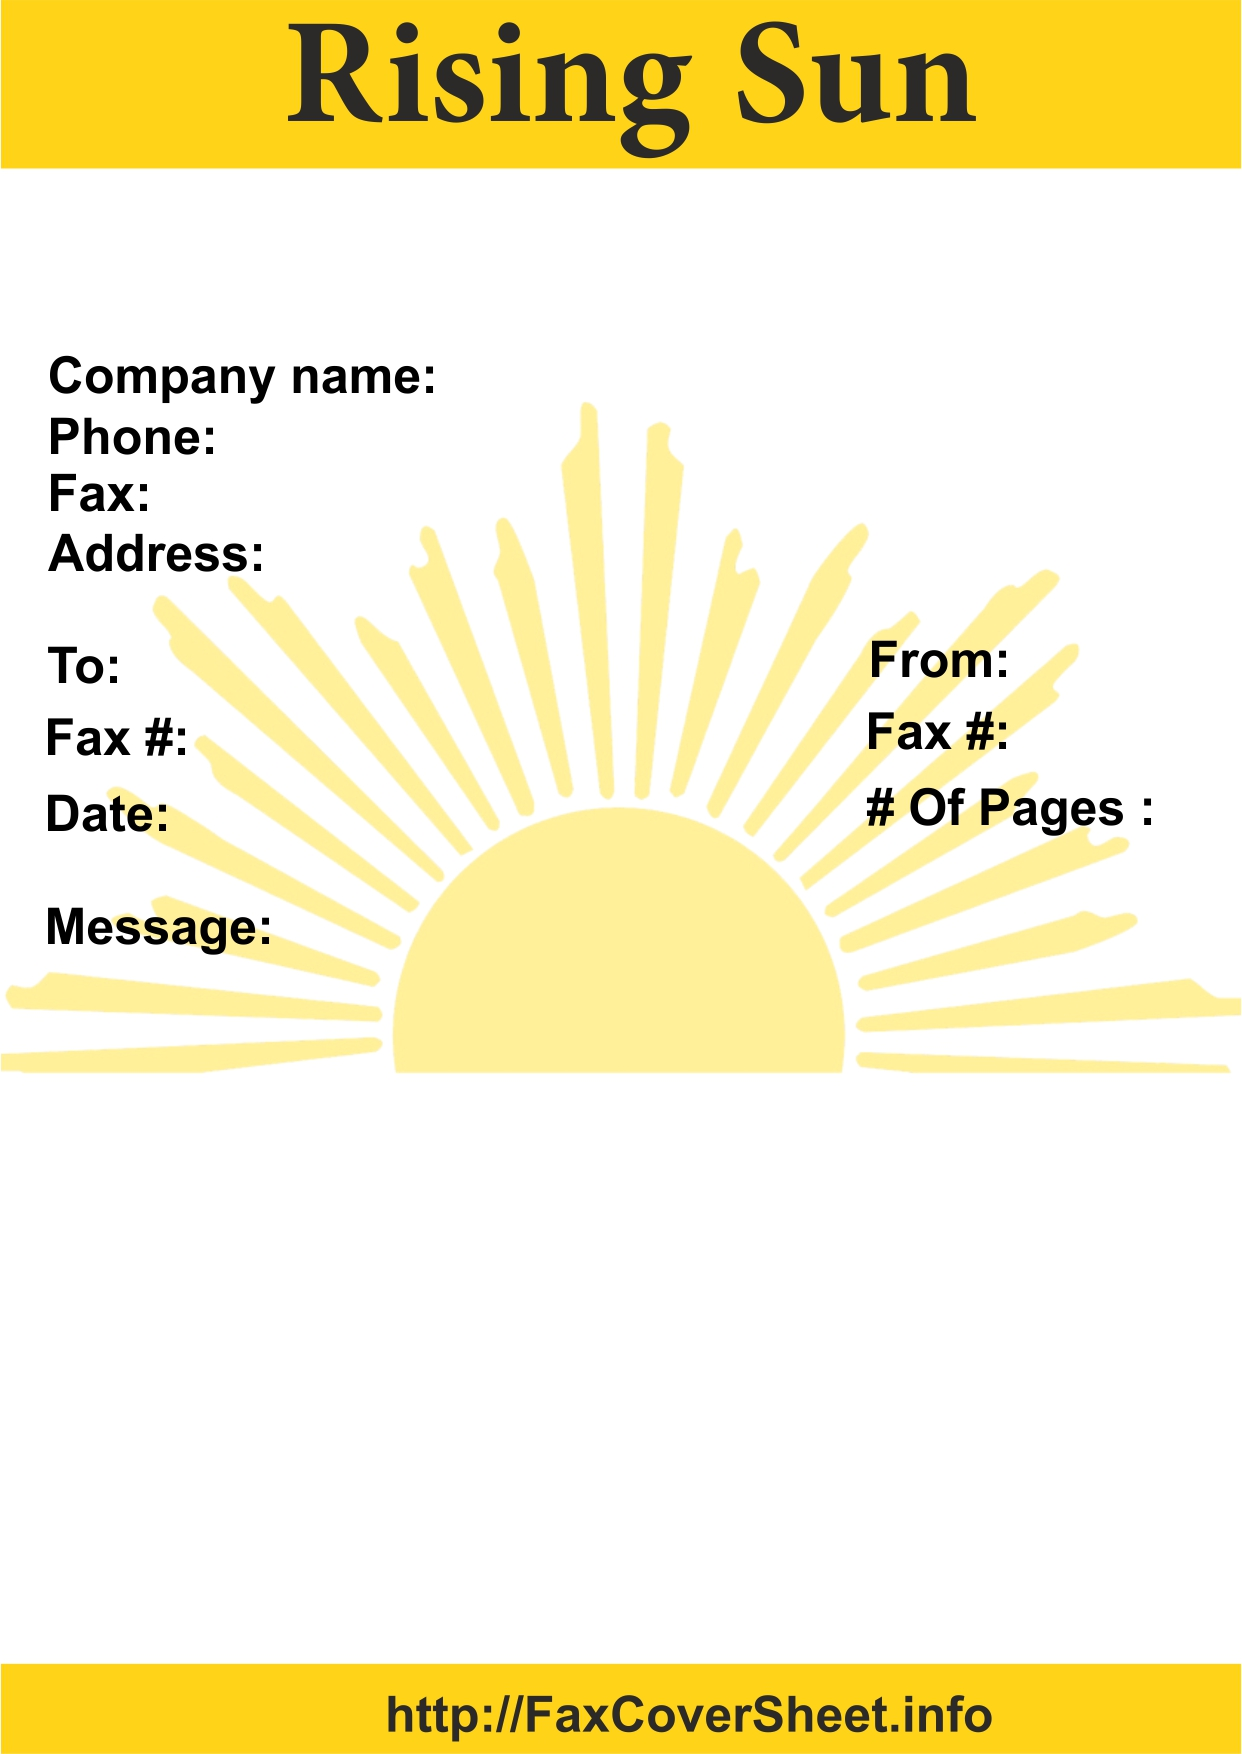 Rising Sun Fax Cover Sheet Template